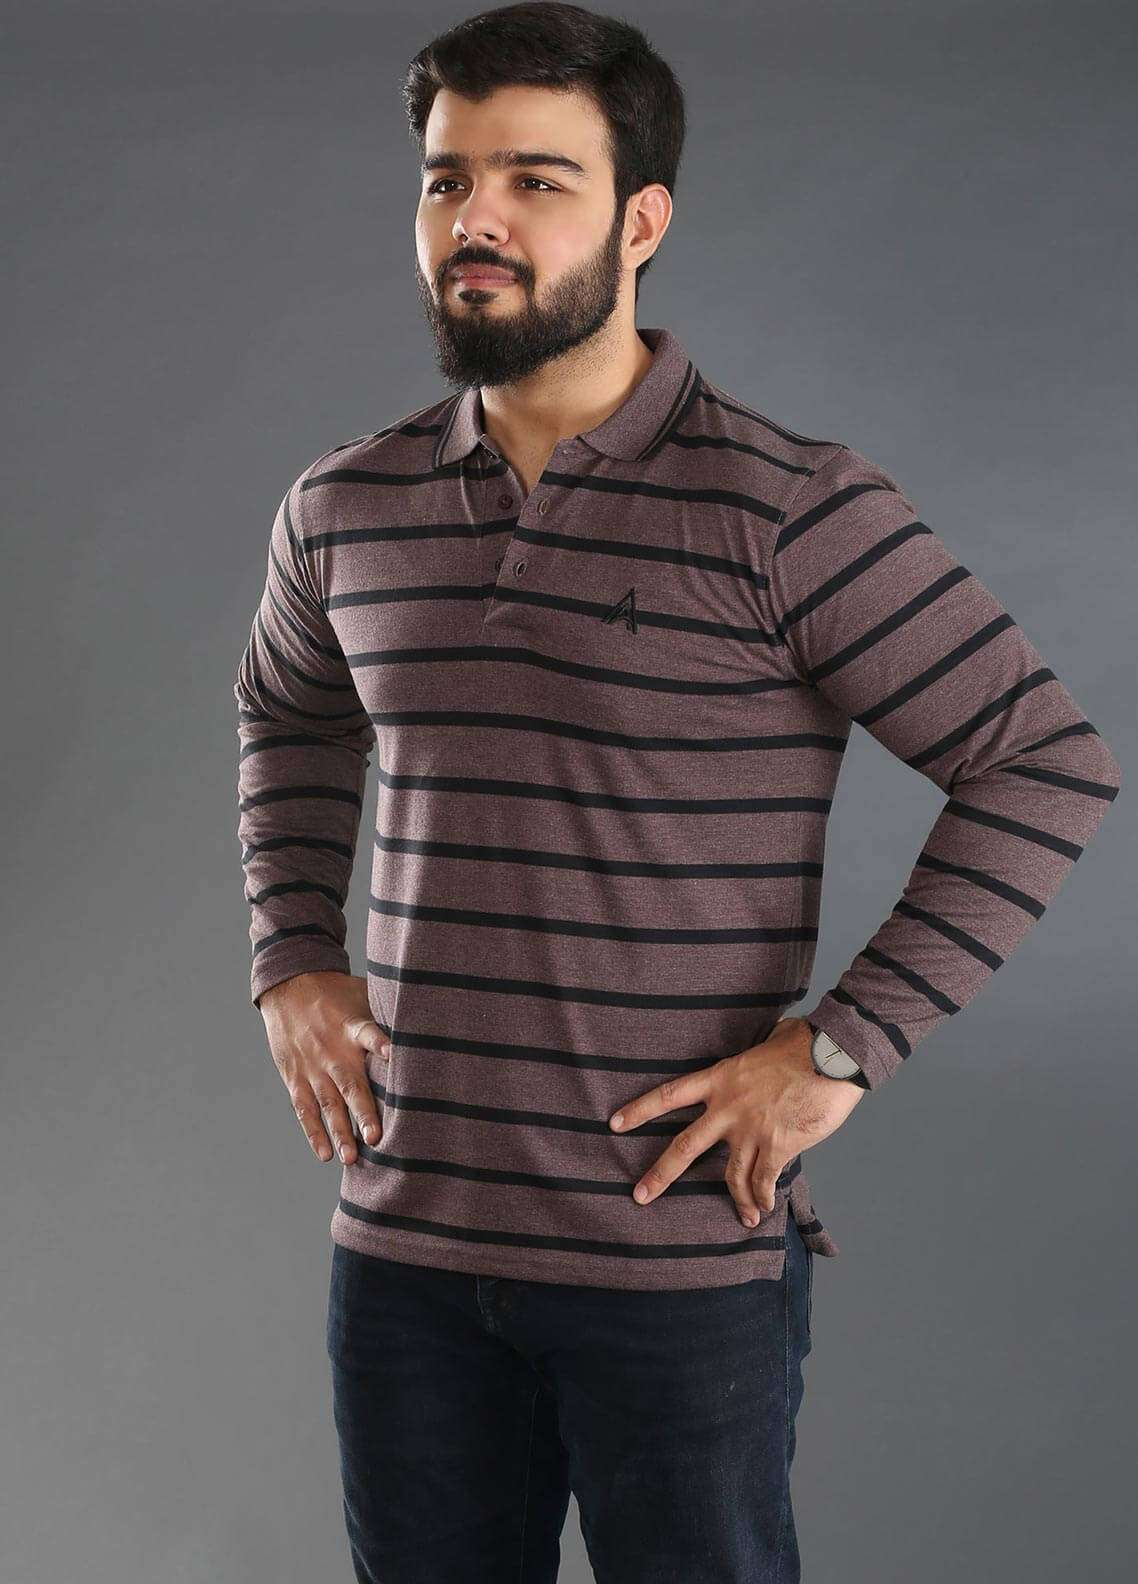 Anchor Jersey Polo T-Shirts for Men - Multi A-234